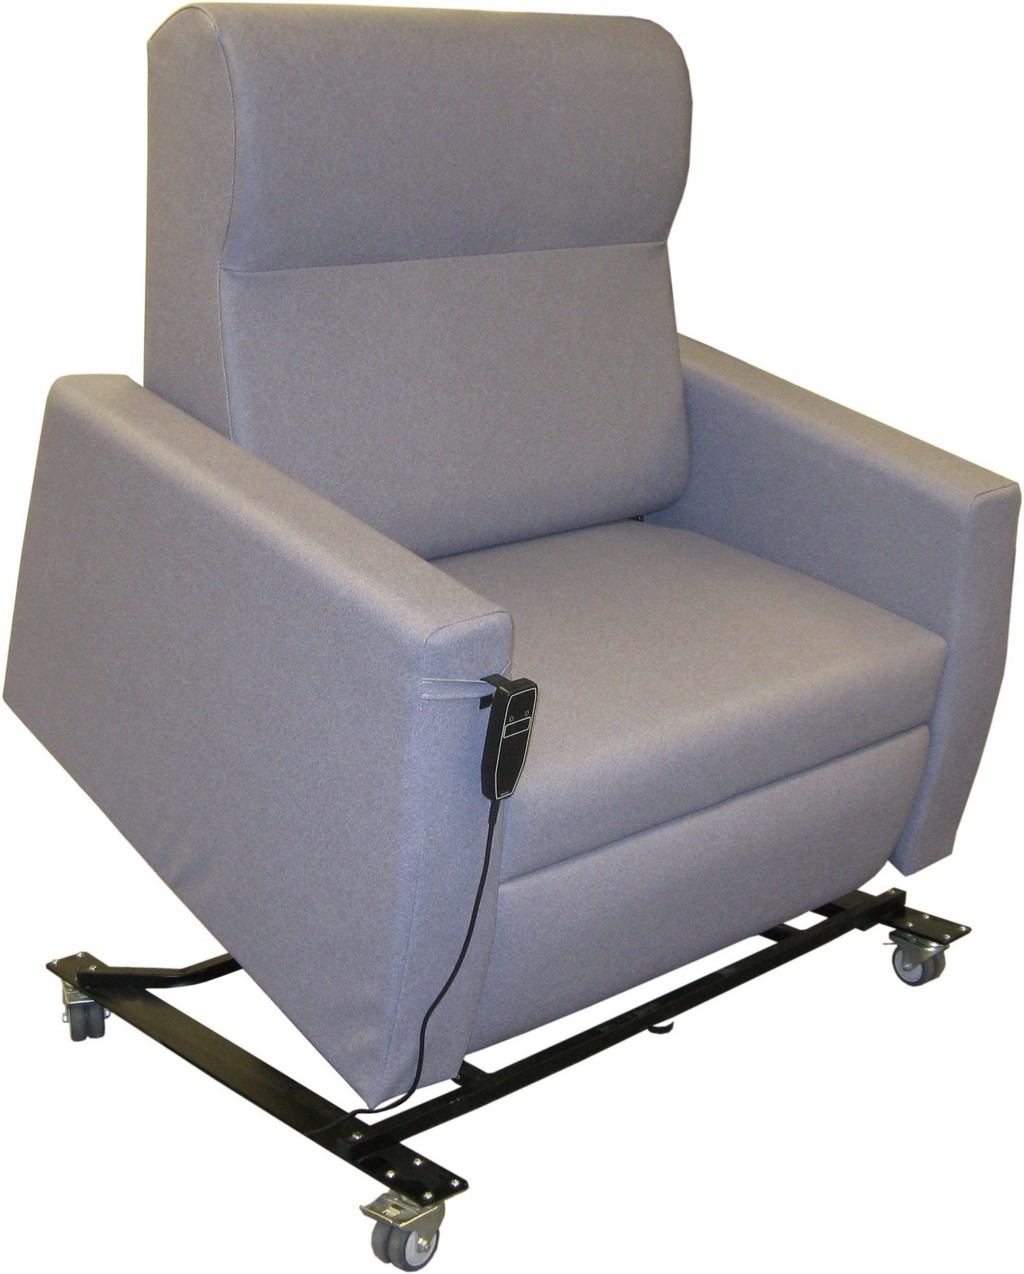 Lift Chair Parts - Medical Center Supply